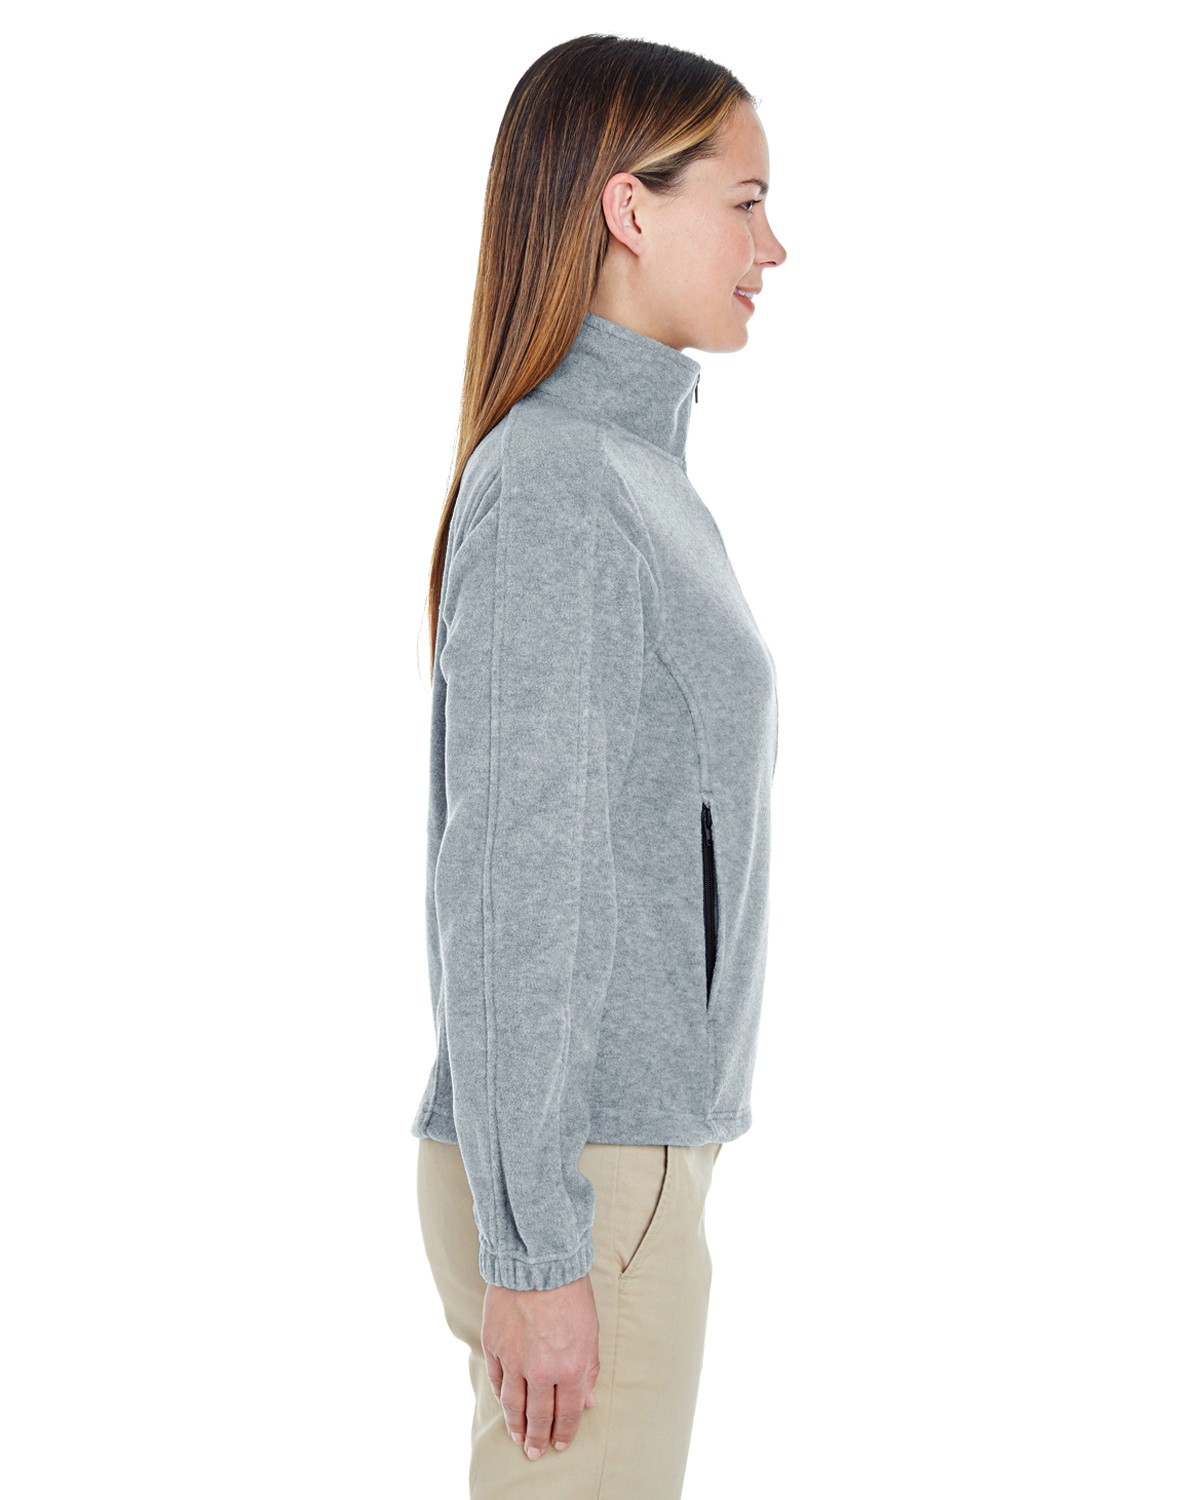 8481 UltraClub GREY HEATHER